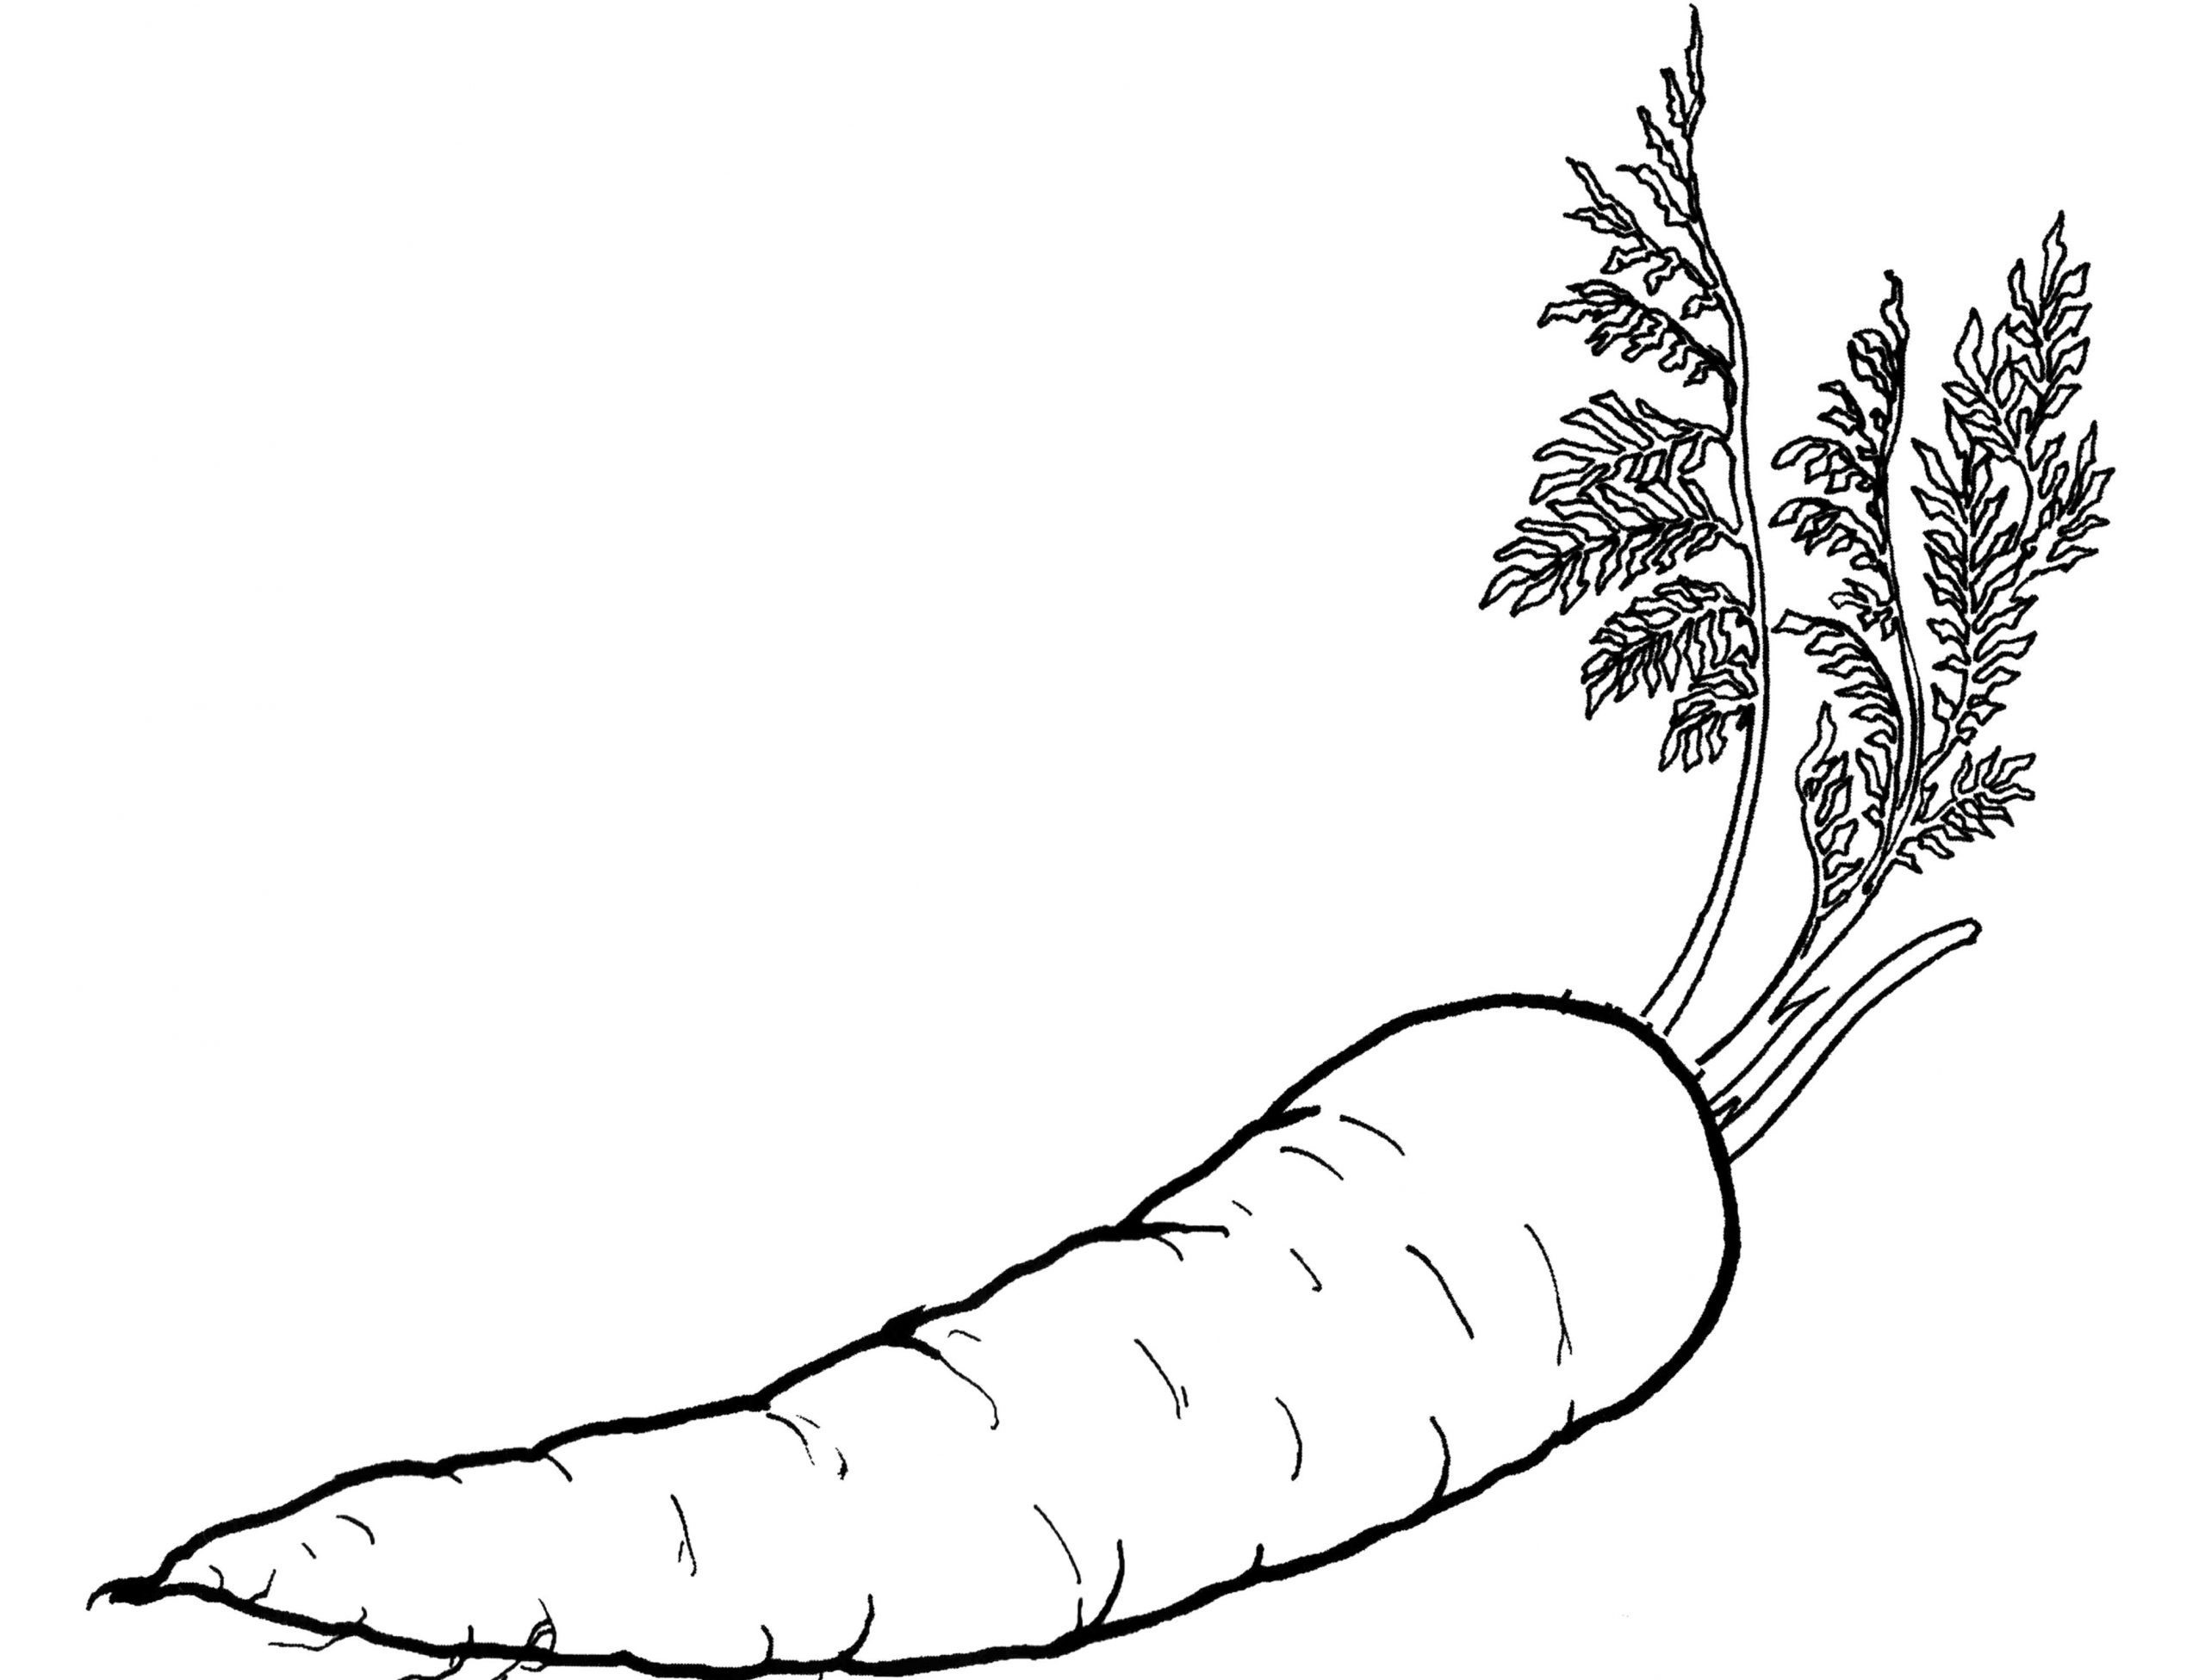 Radish coloring page | Free Printable Coloring Pages | 1951x2560